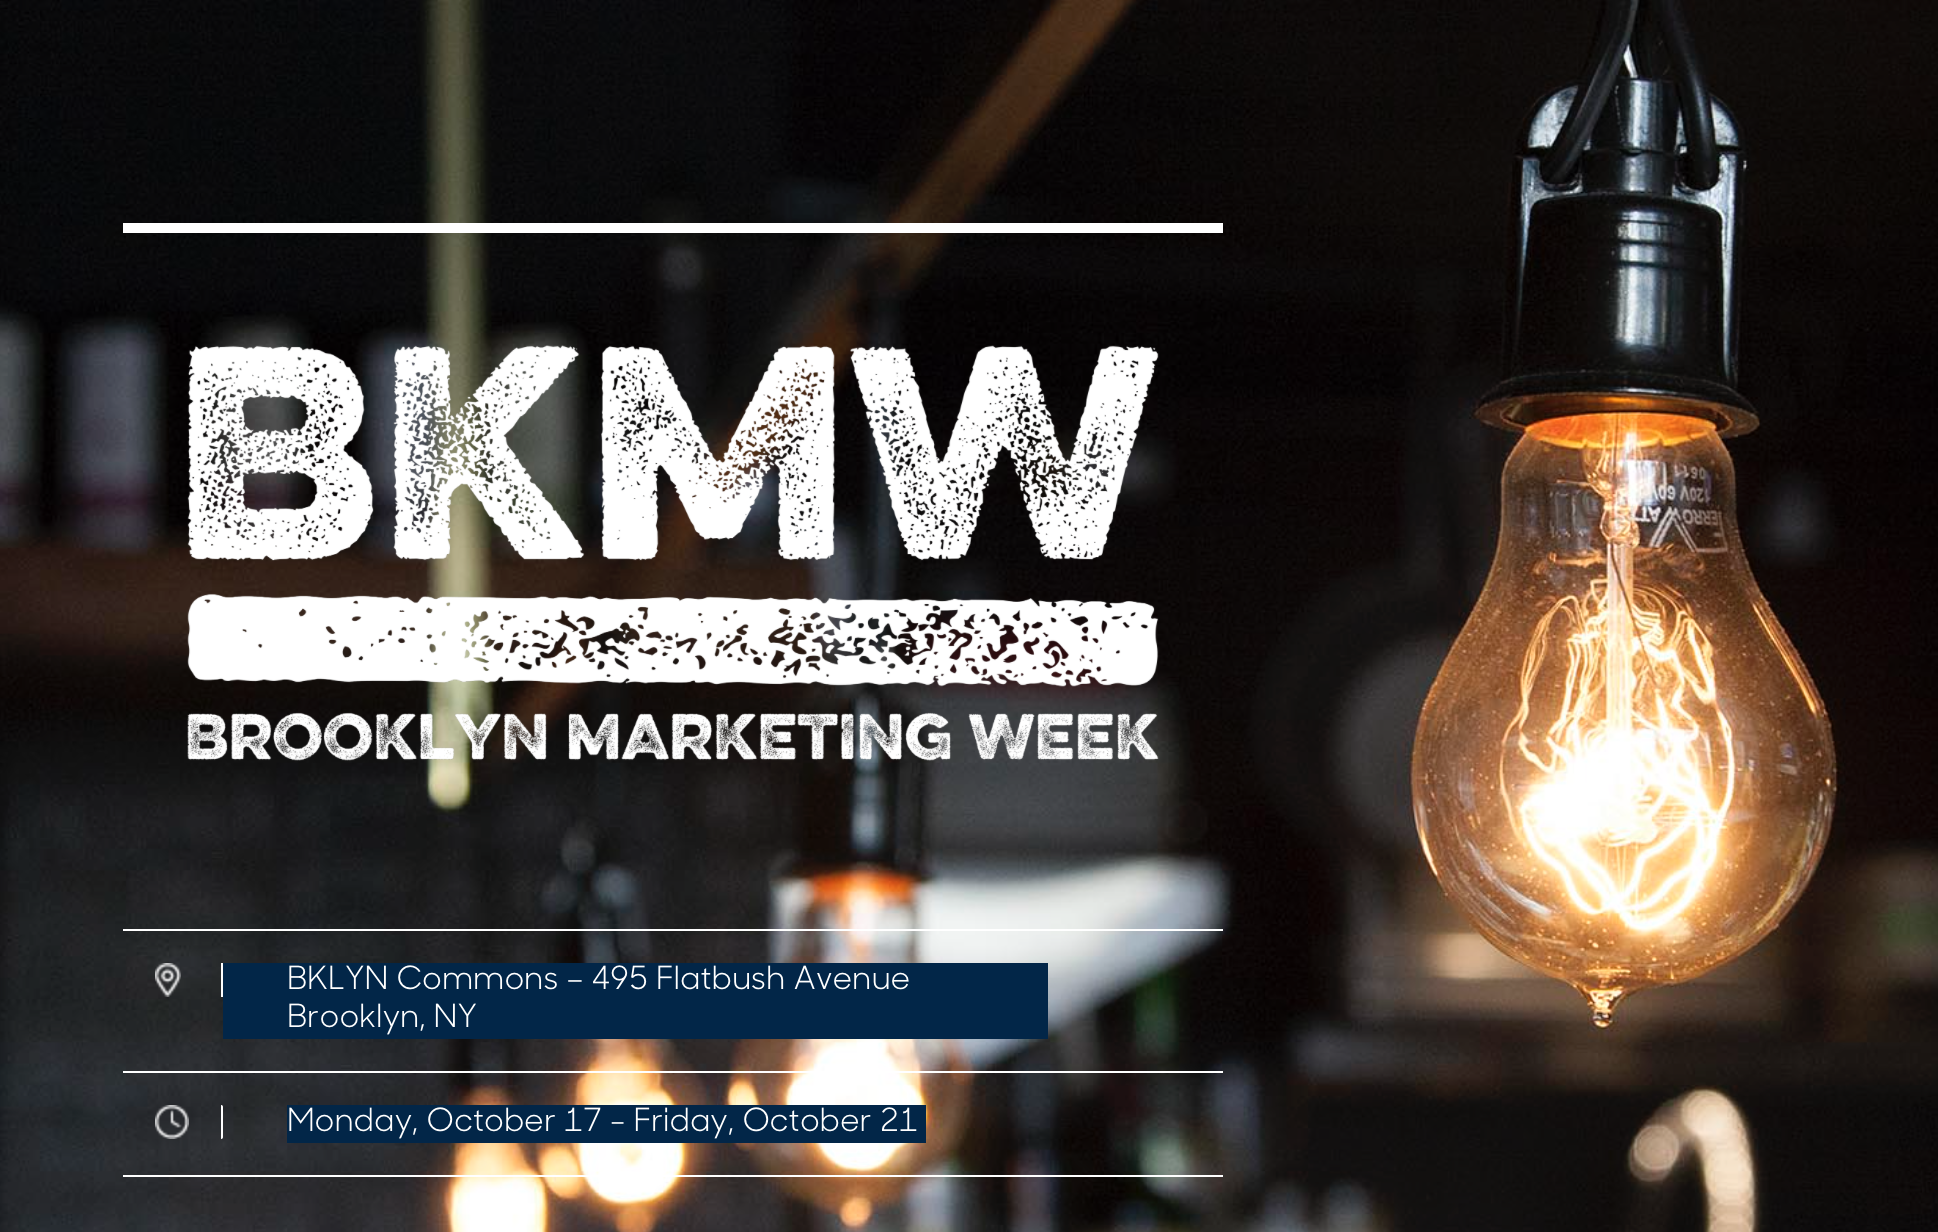 Brooklyn Marketing Week Aims To Help Every Entrepreneur And Small Business Leader Succeed